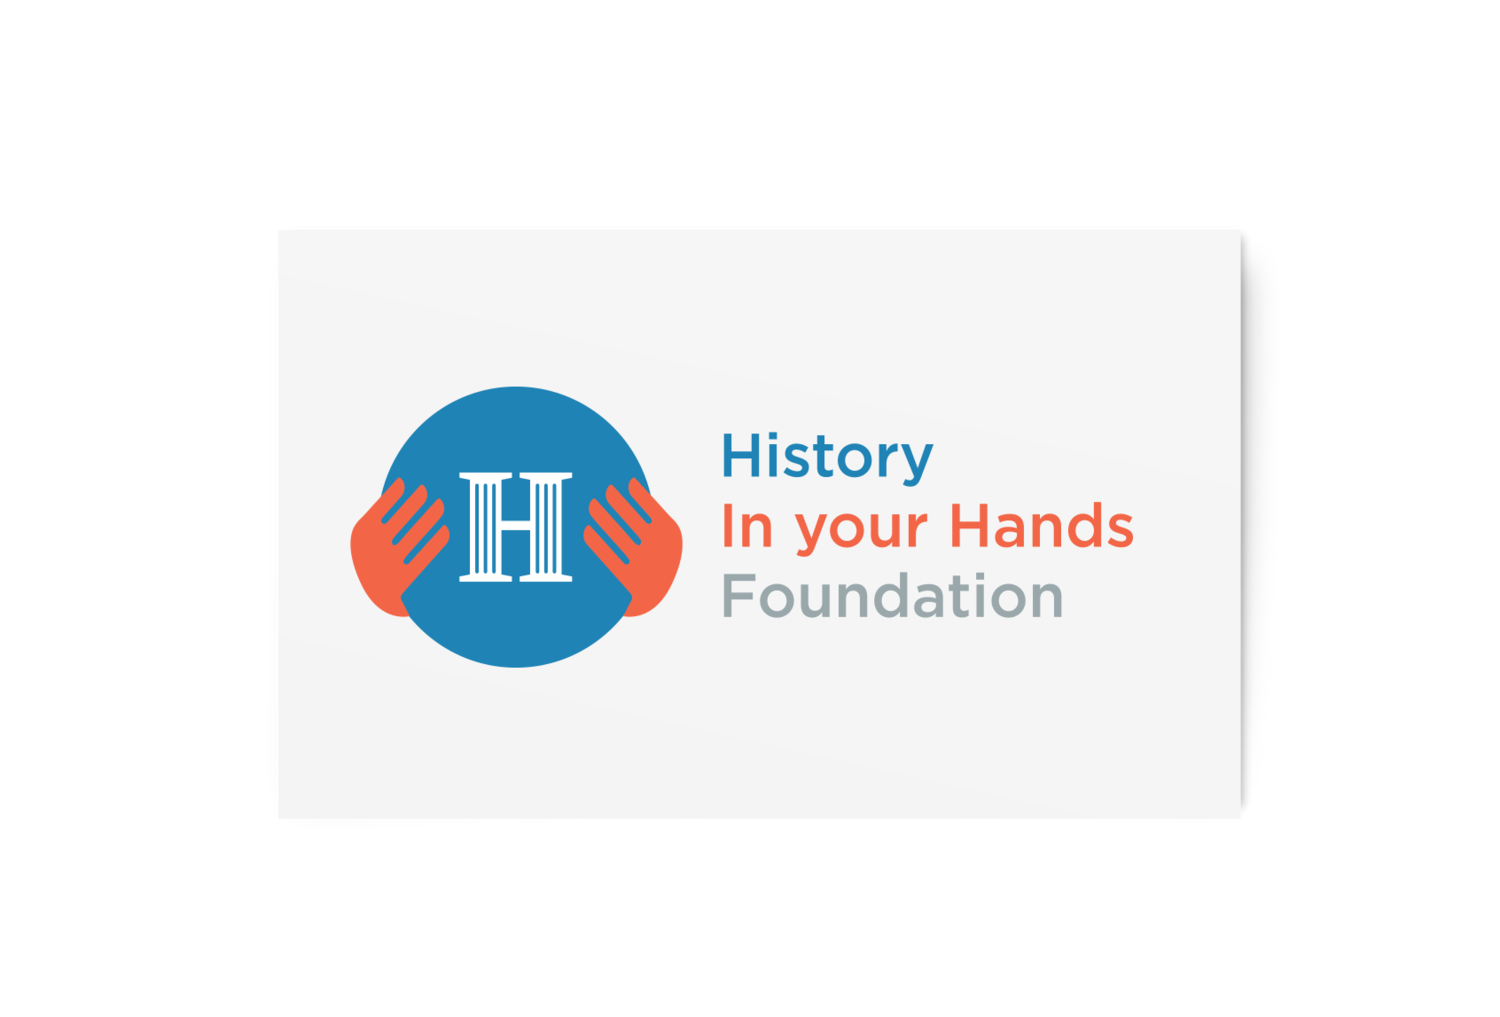 History in Your Hands Foundation